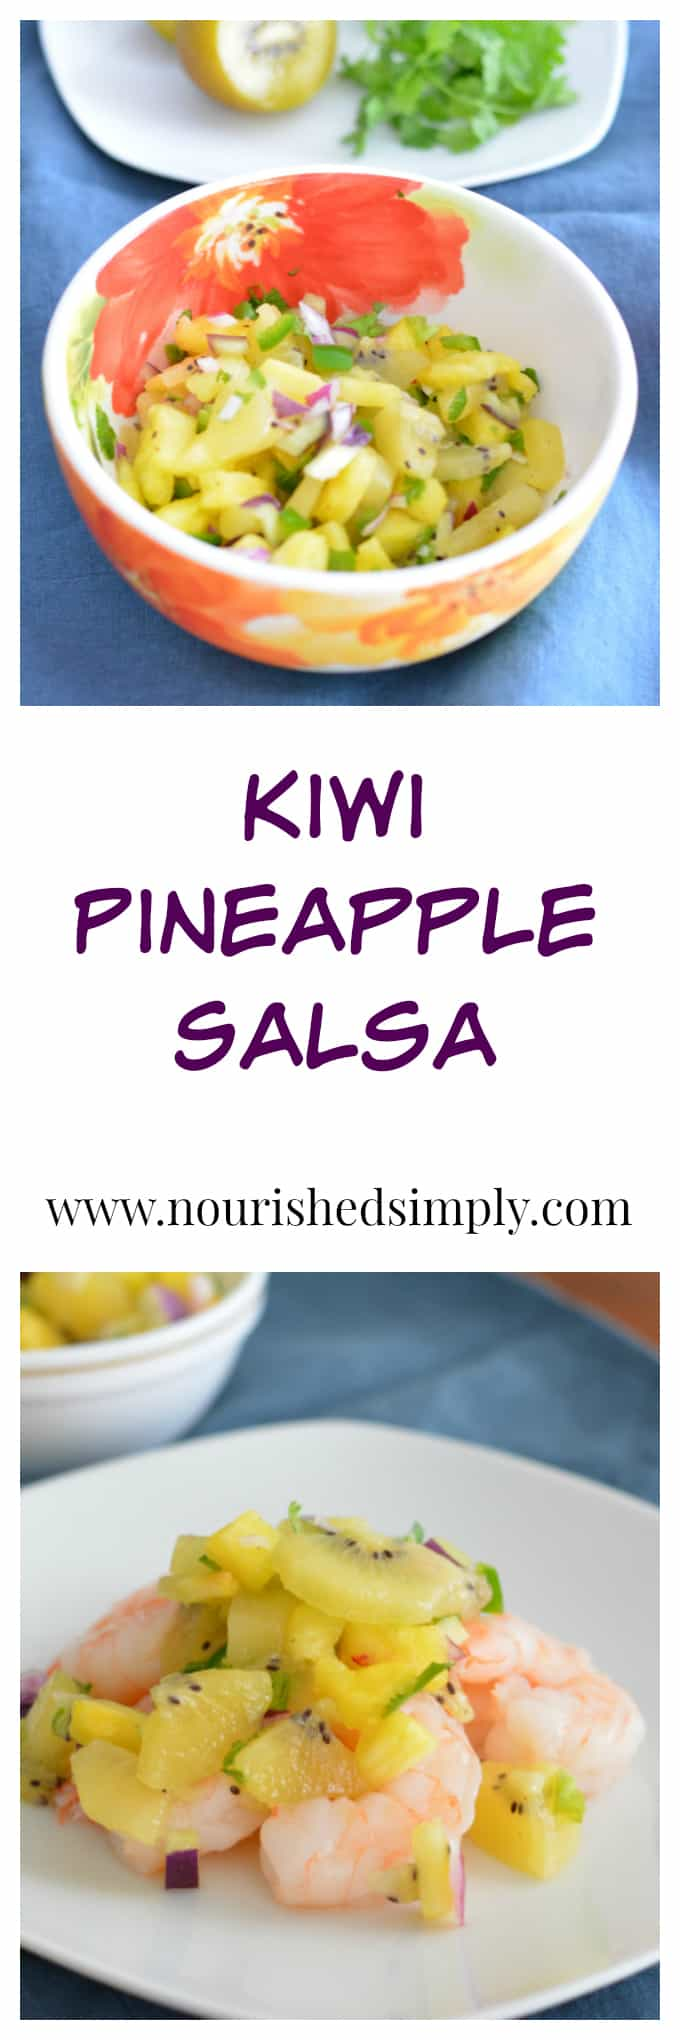 Kiwi Pineapple Salsa made with @zespri Sungold kiwi fruit is a great compliment to any protein. Works well with most shrimp, chicken, pork, or fish recipes.